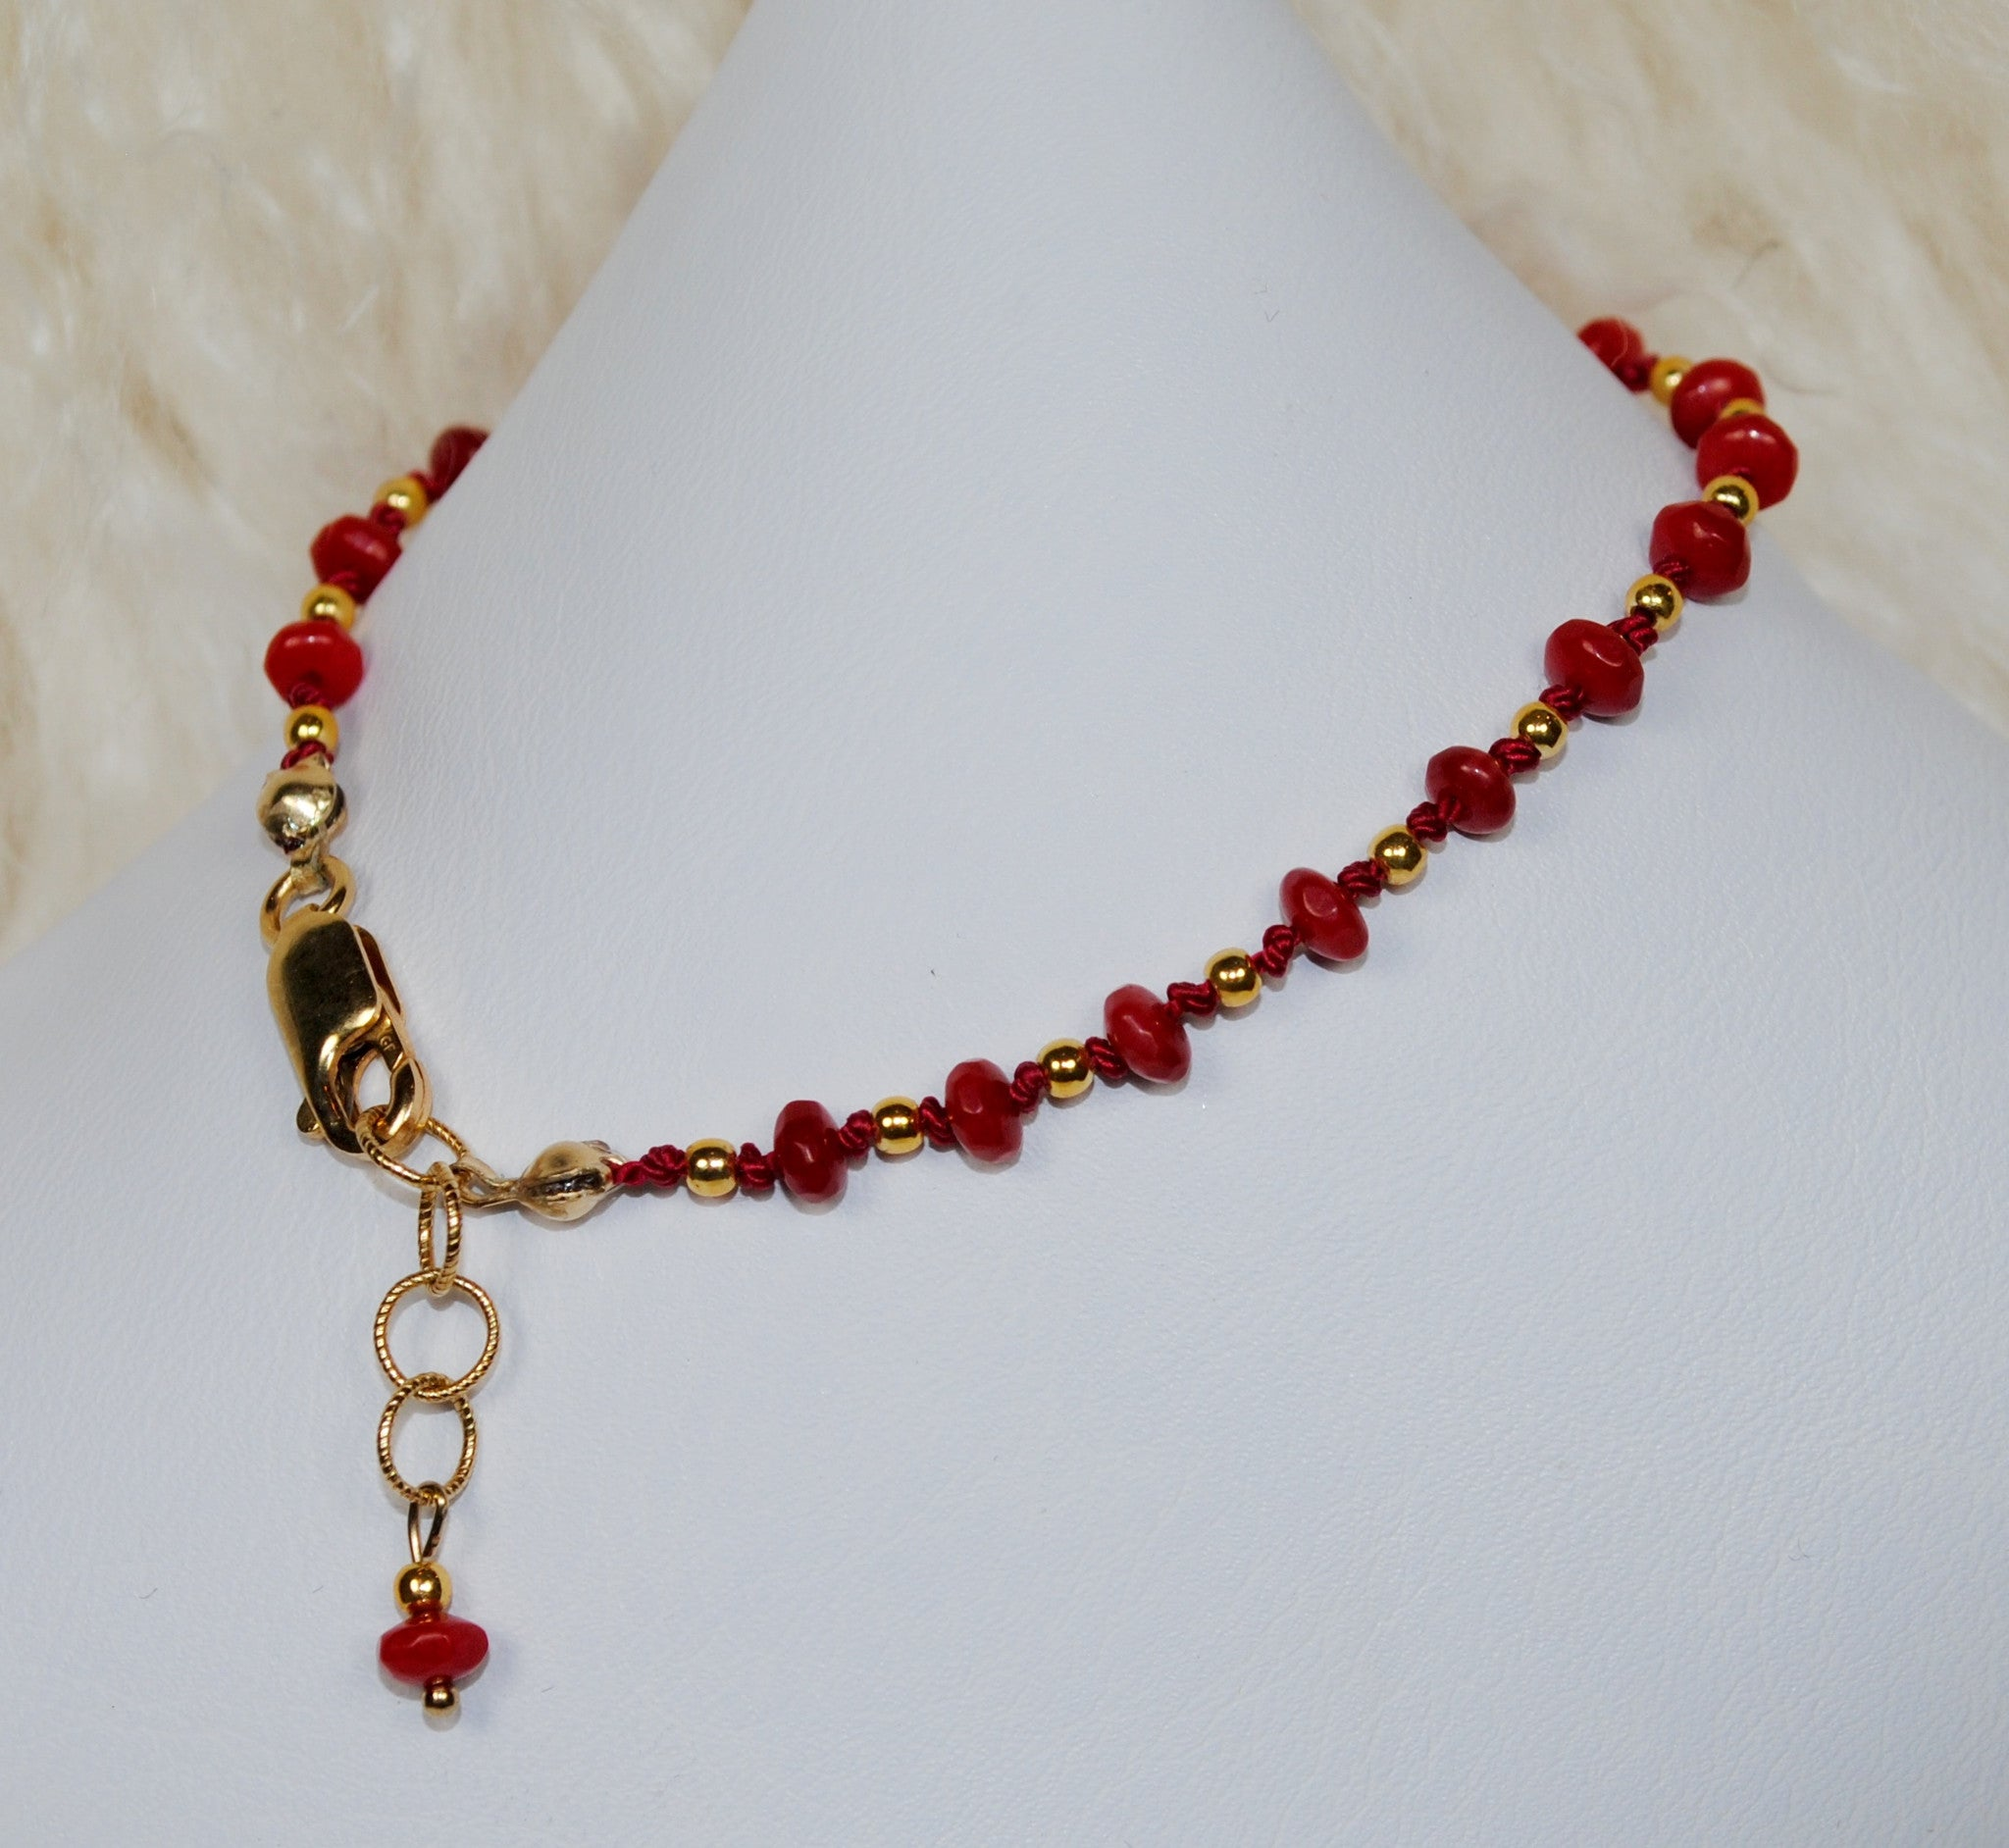 Red & Gold 'Giving Back' Bracelet - Small Bead